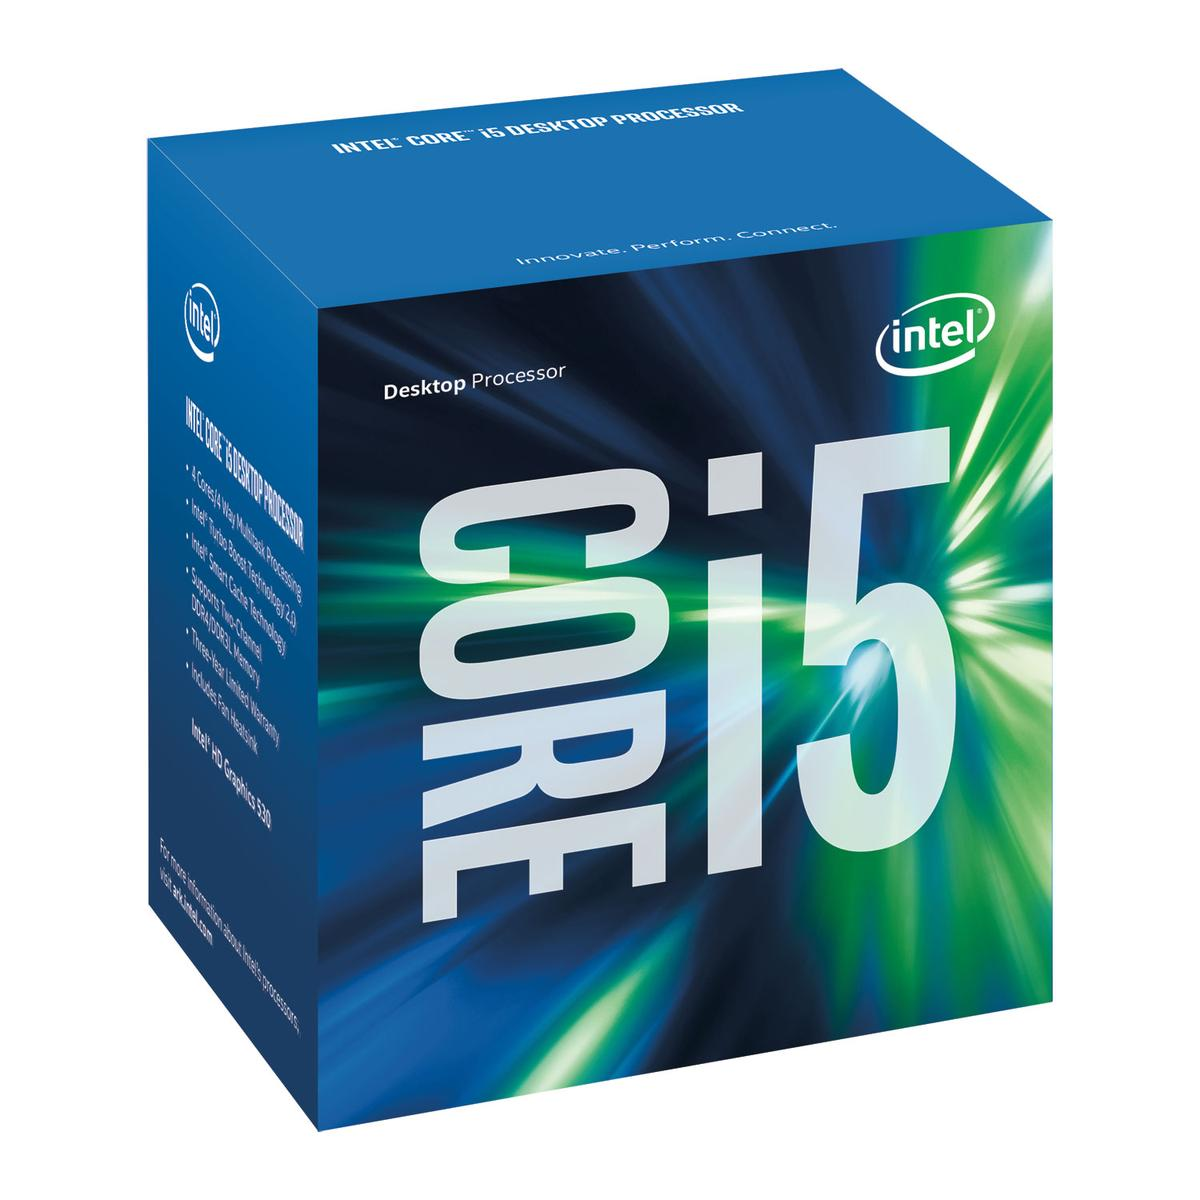 Intel Core i5-6500 3.2GHz Quad-Core